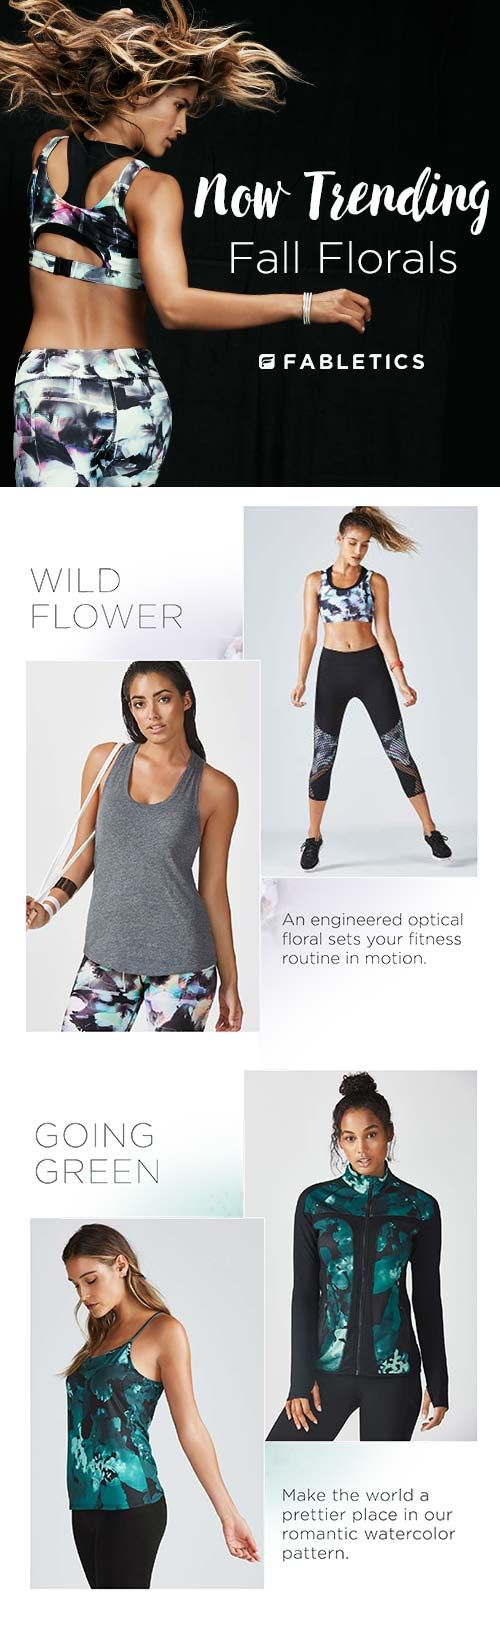 Now trending: Fall Florals. Discover Fabletics by Kate Hudson as we explore fall florals, delicate details, mesh panels and launch our Signature Bestsellers Collection. For a limited time only, get your first outfit for $15 when you become a VIP Member. Don't miss out on your favorite looks!